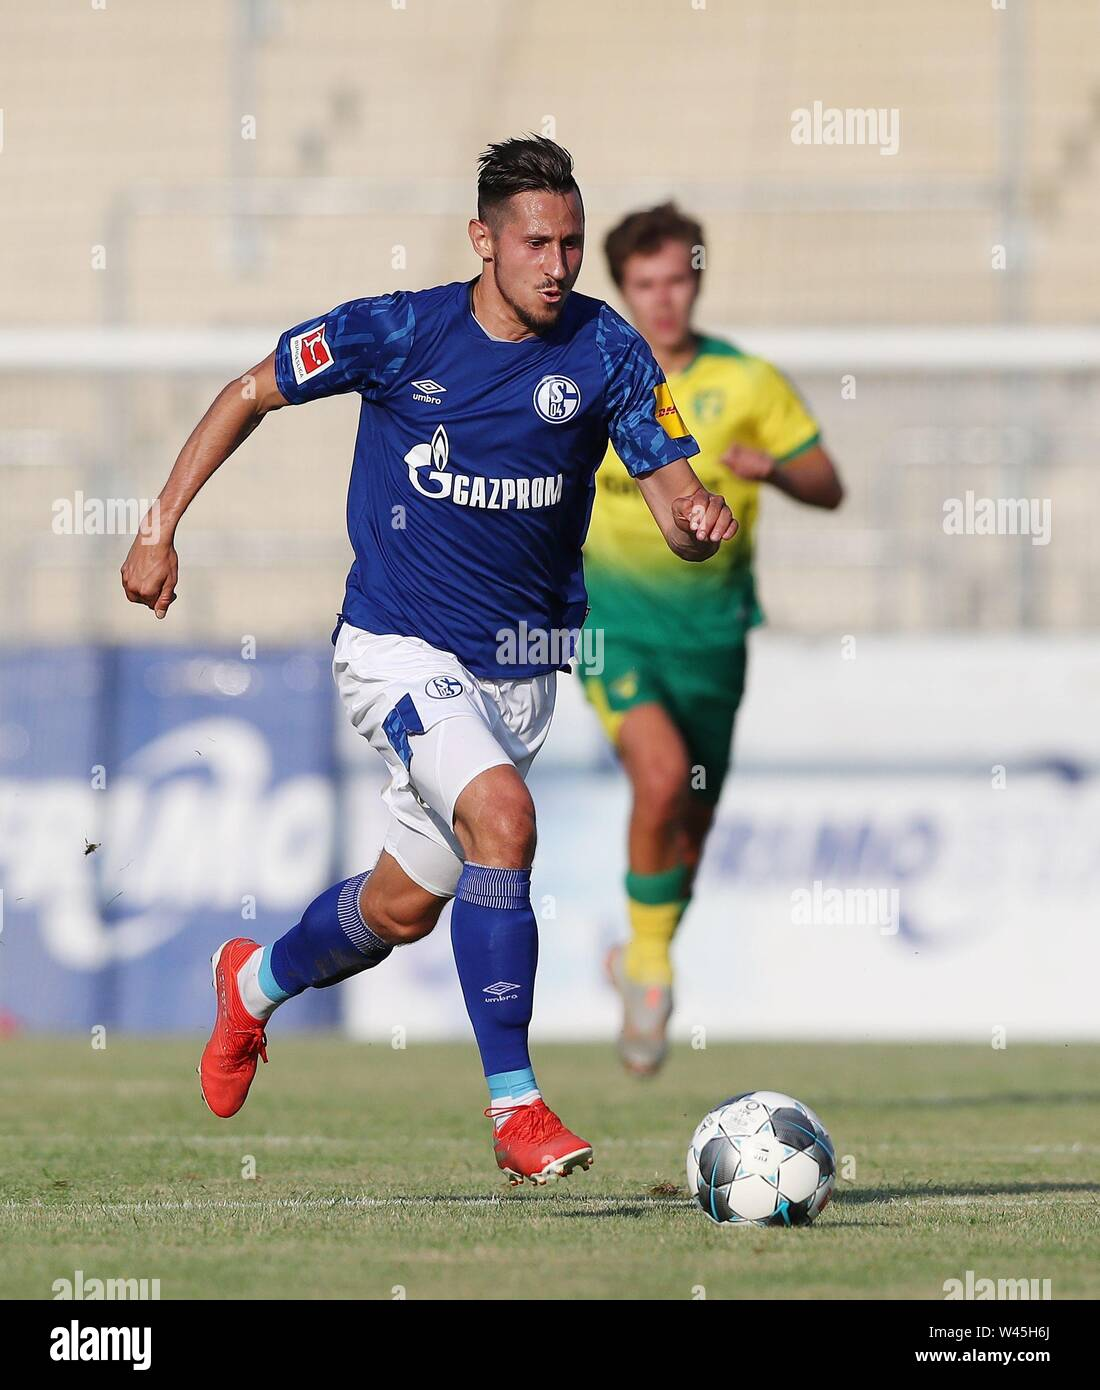 Lotte, Deutschland. 19th July, 2019. firo: 19.07.2019, football, 1.Bundesliga, season 2019/2020, friendly match, FC Schalke 04 - Norwich City Steven SKRZYBSKI, Schalke, single action | usage worldwide Credit: dpa/Alamy Live News - Stock Image